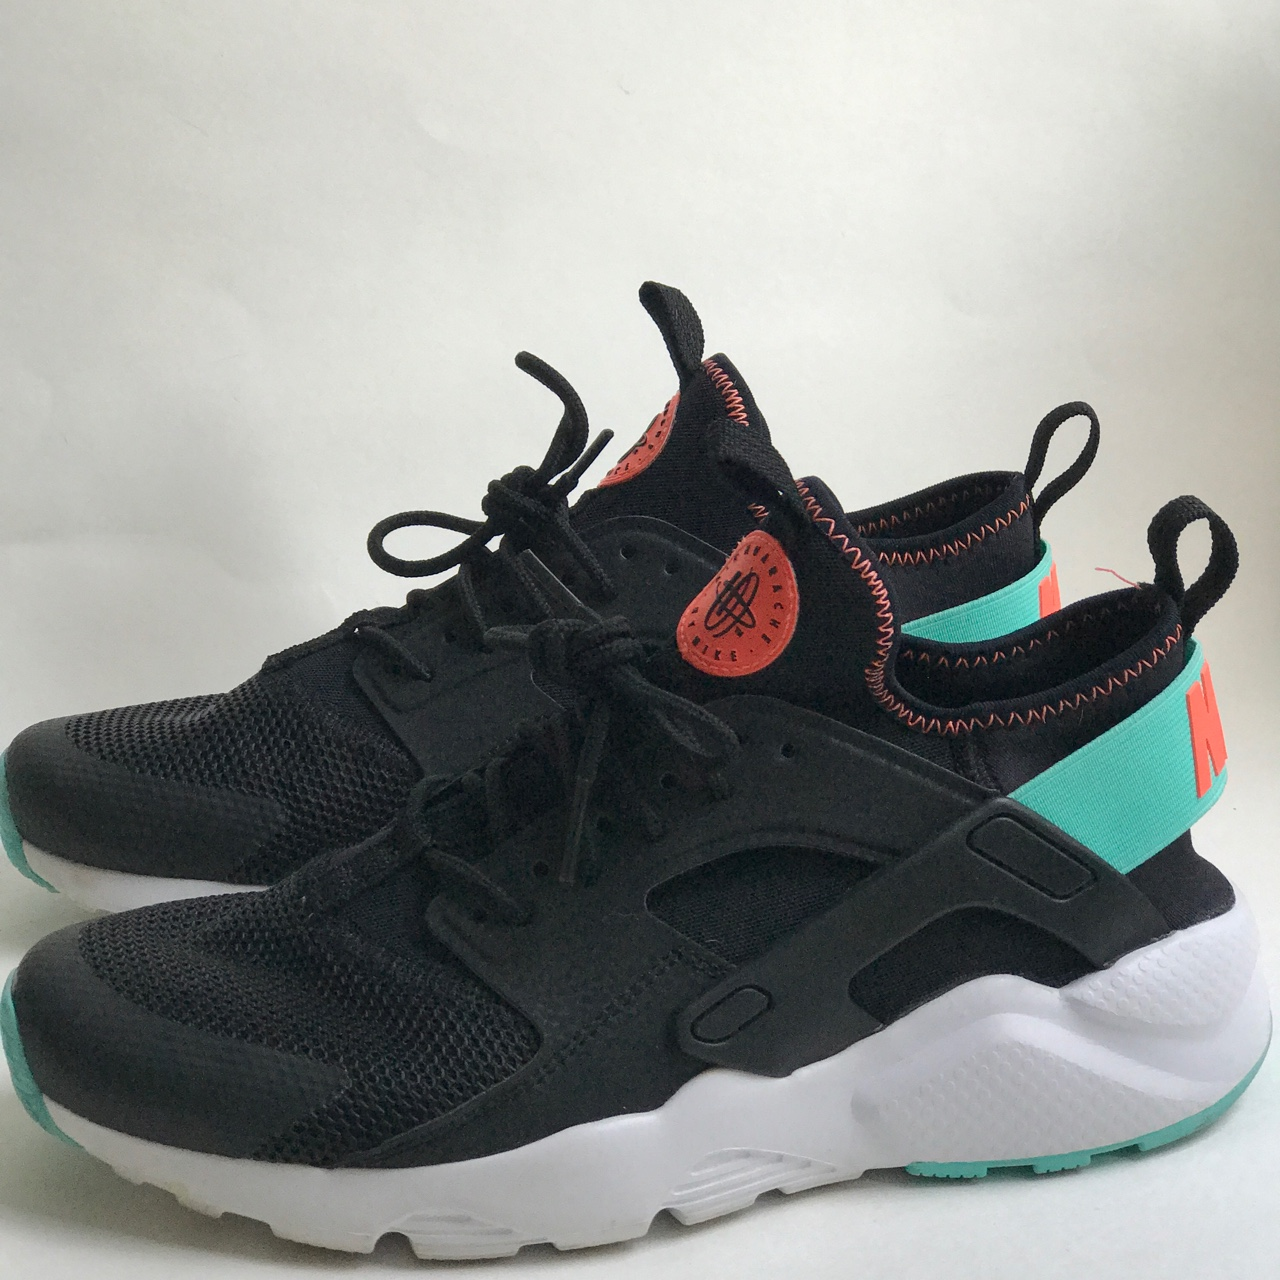 best service 9d532 f6dce ON SALE** Nike Air Huarache Eastbay